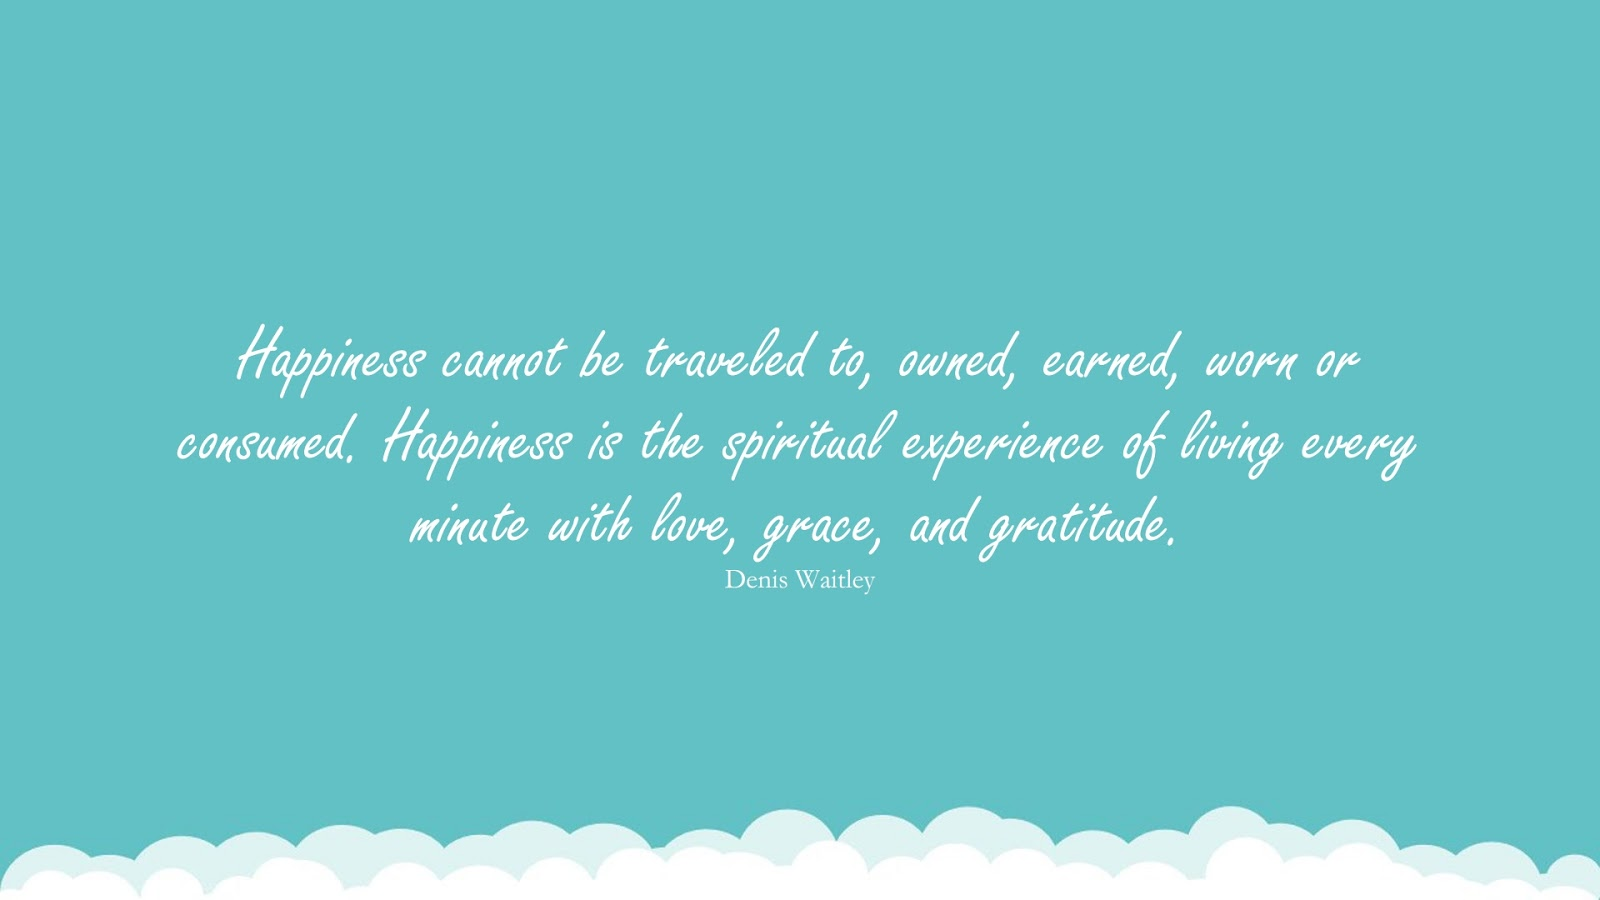 Happiness cannot be traveled to, owned, earned, worn or consumed. Happiness is the spiritual experience of living every minute with love, grace, and gratitude. (Denis Waitley);  #LoveQuotes